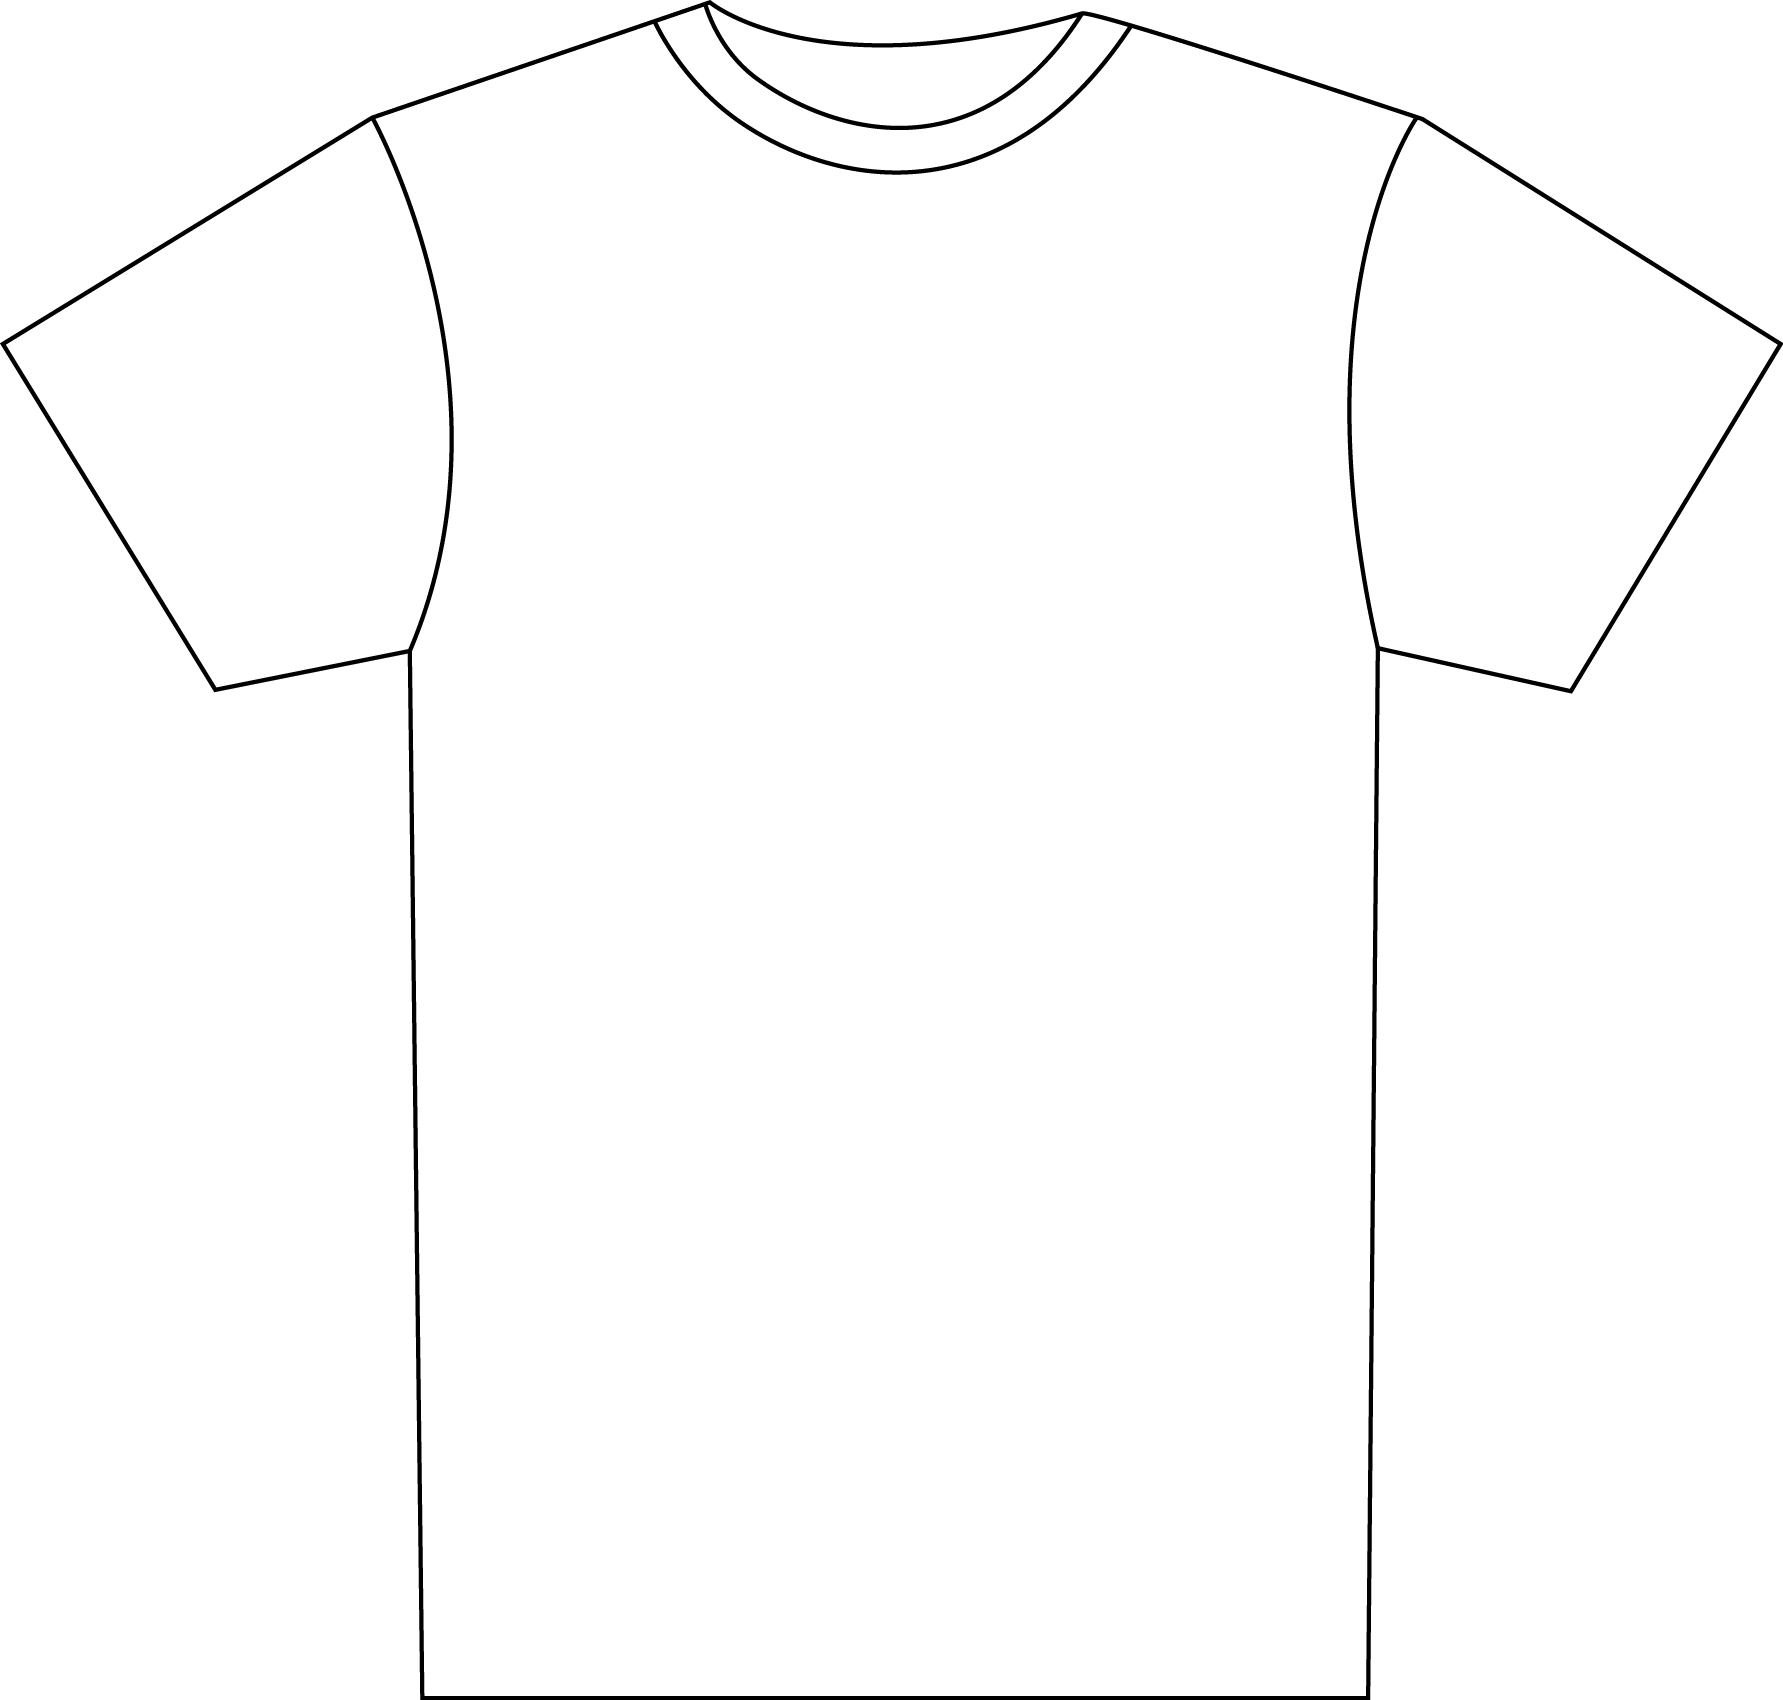 Black t shirt outline - Filename Black Tshirt Png - Tshirt PNG Outline